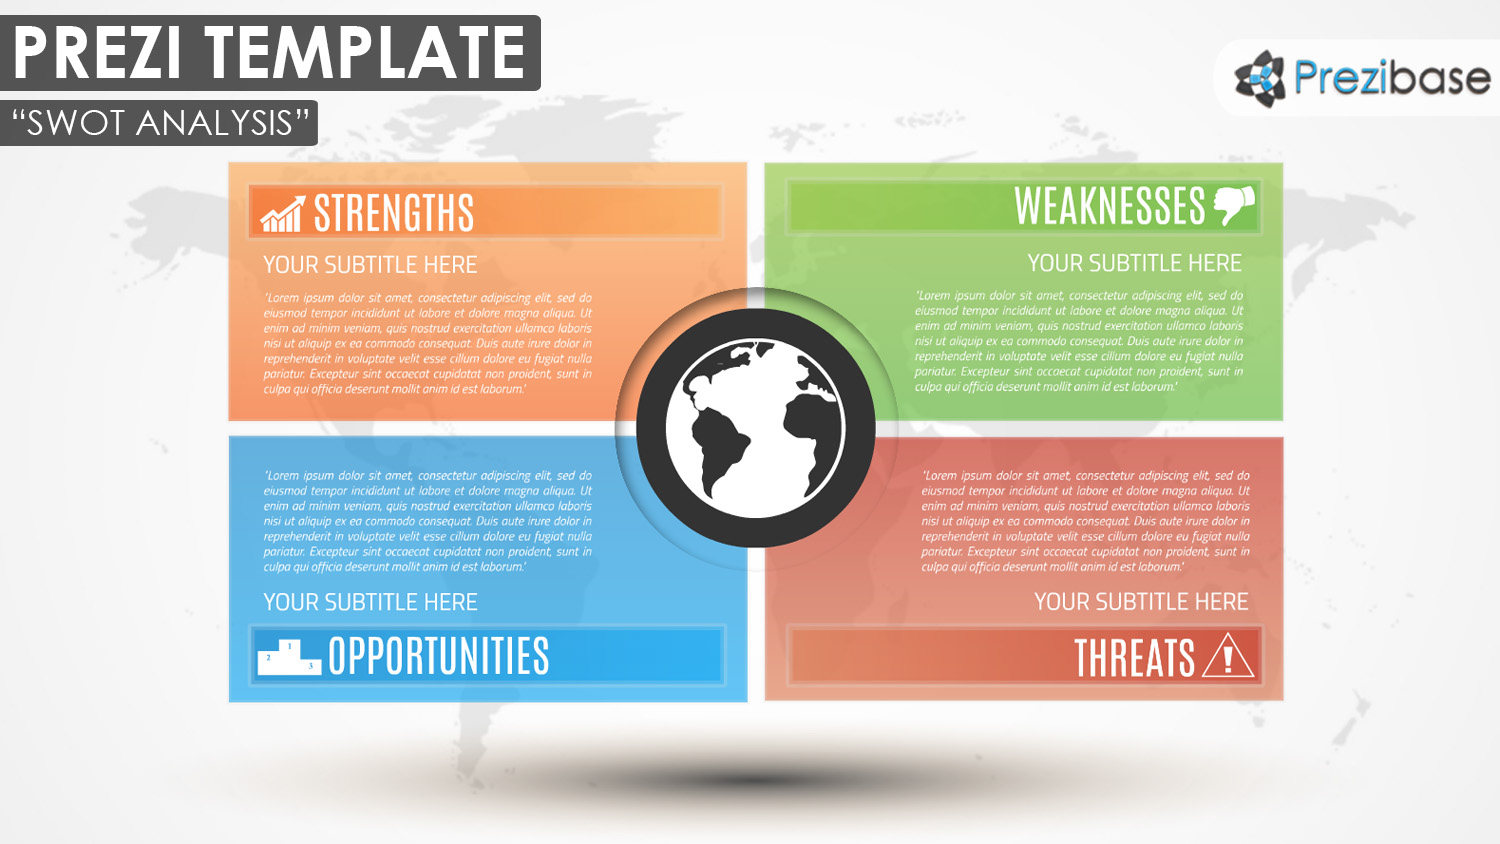 swot analysis template for prezi